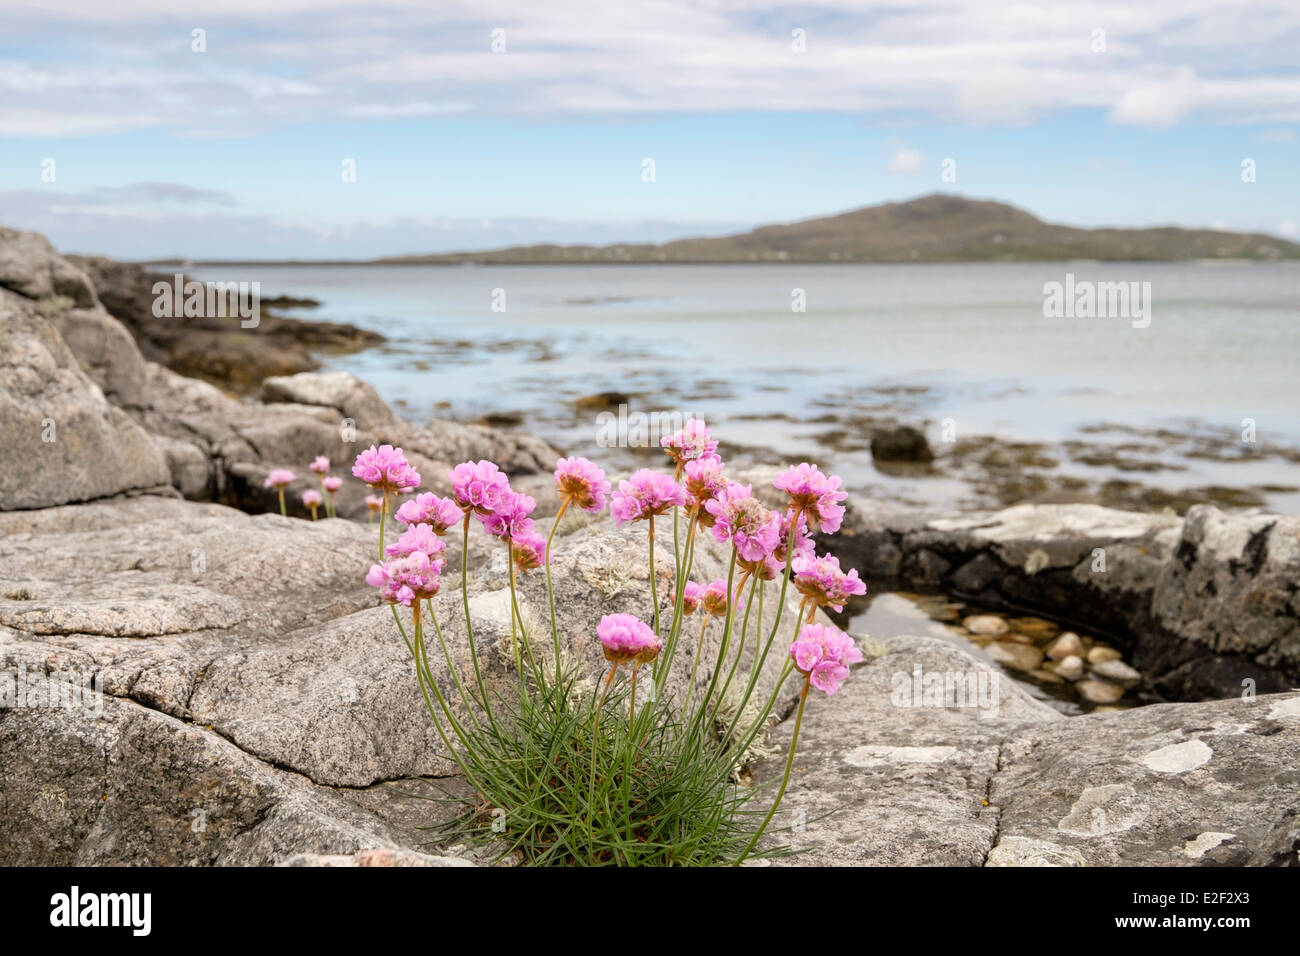 Thrift / Sea Pink flowers growing amongst rocks on beach with view to Eriskay. Kilbride South Uist Outer Hebrides - Stock Image